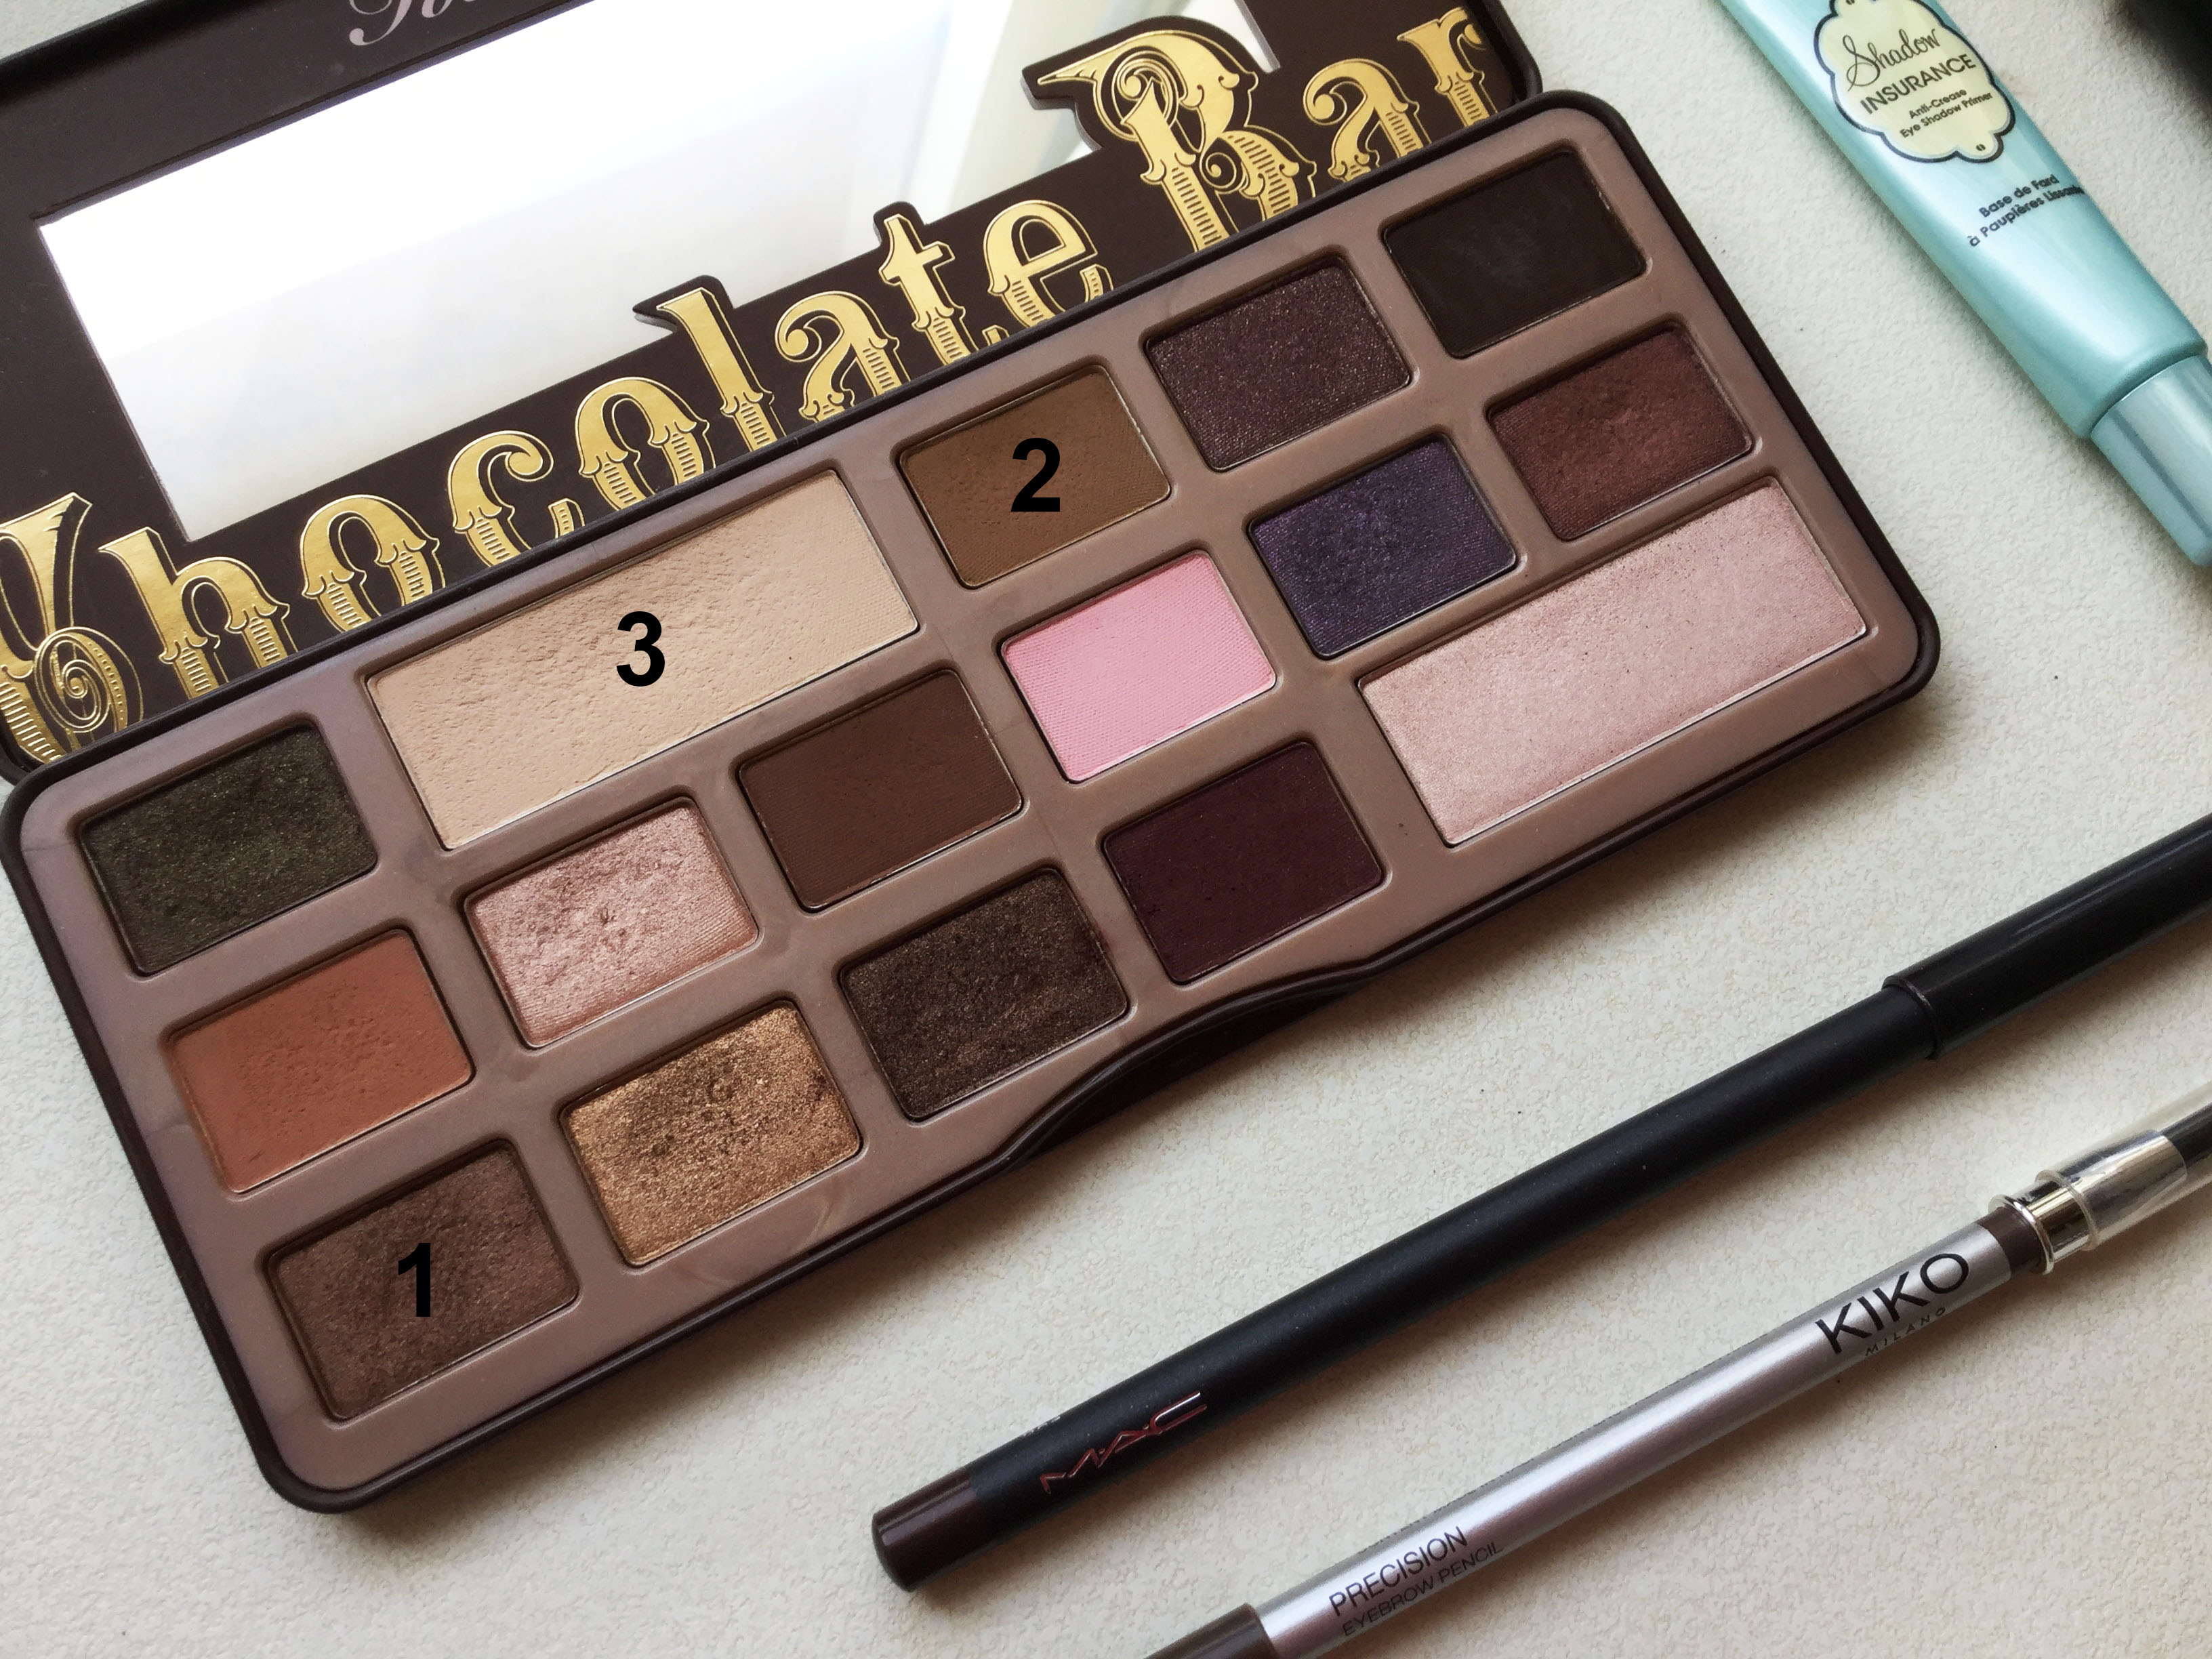 Paleta Chocolate Bar de Too Faced.